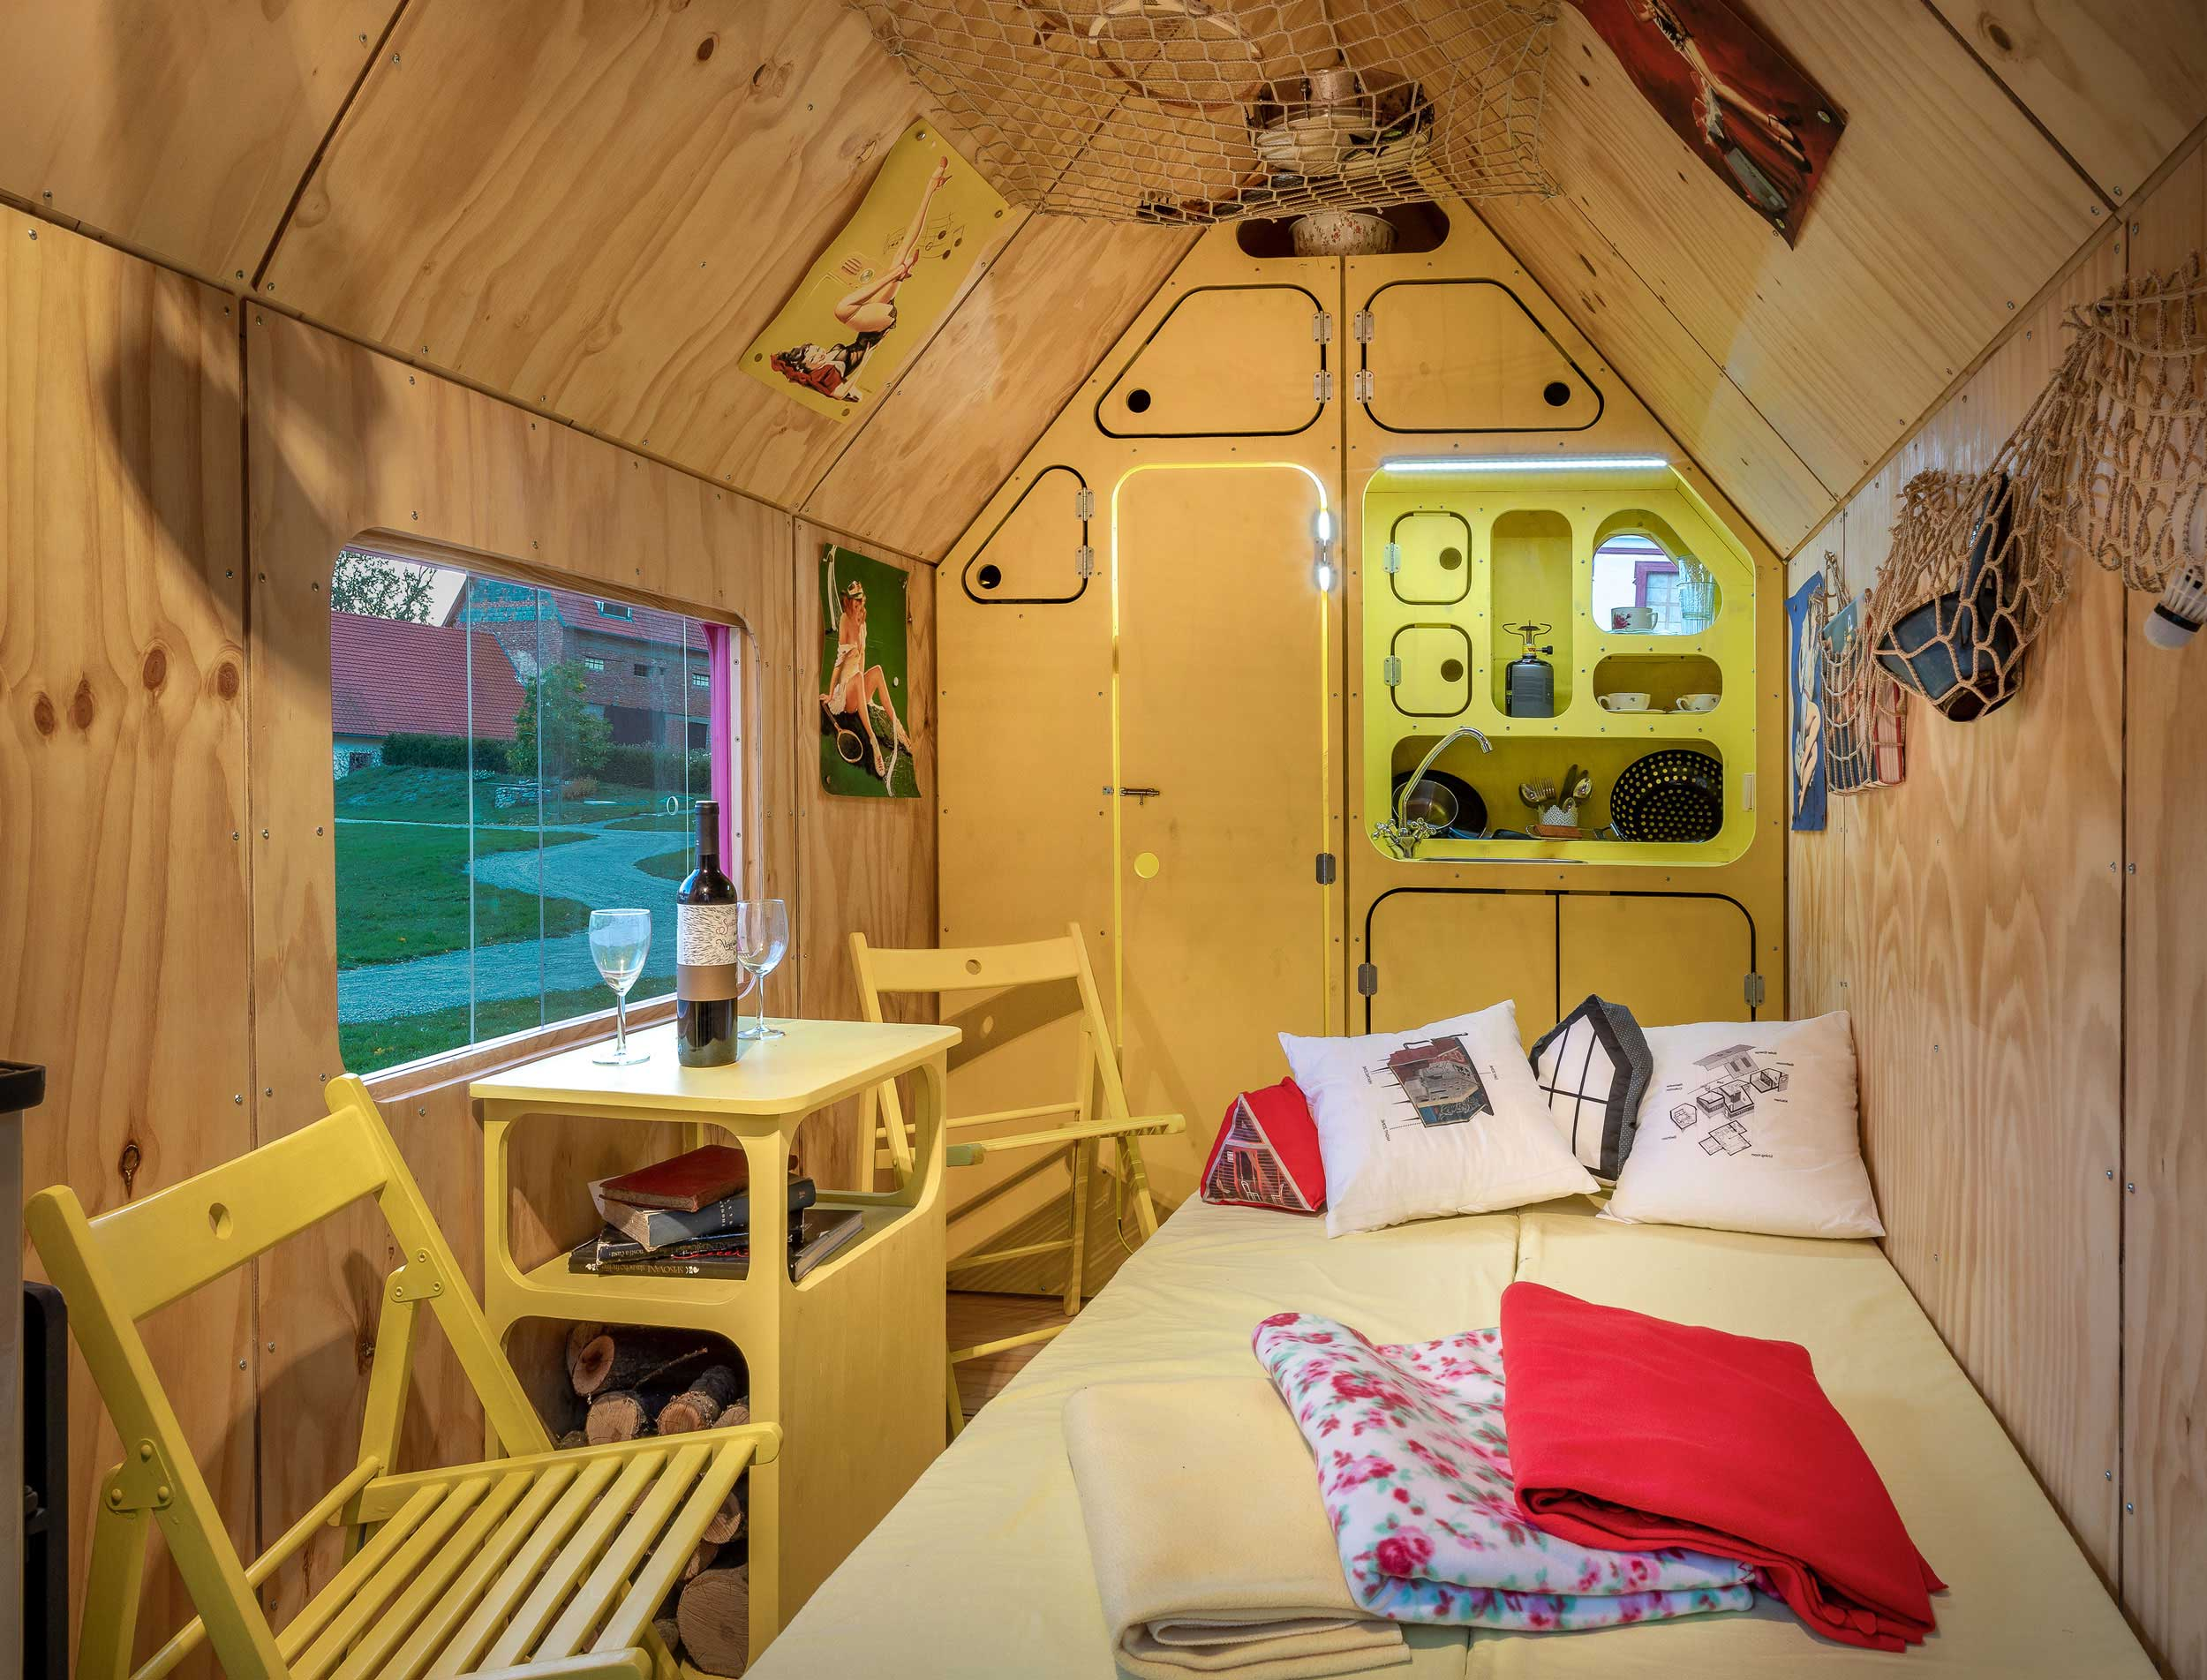 Magenta Tiny House - Press Release & Pictures - Small Wooden ... on 1000 sq ft. small homes, 400 sq ft. small homes, tiny key west homes, busses from tiny homes, tiny pueblo homes, mini custom homes, pod homes,